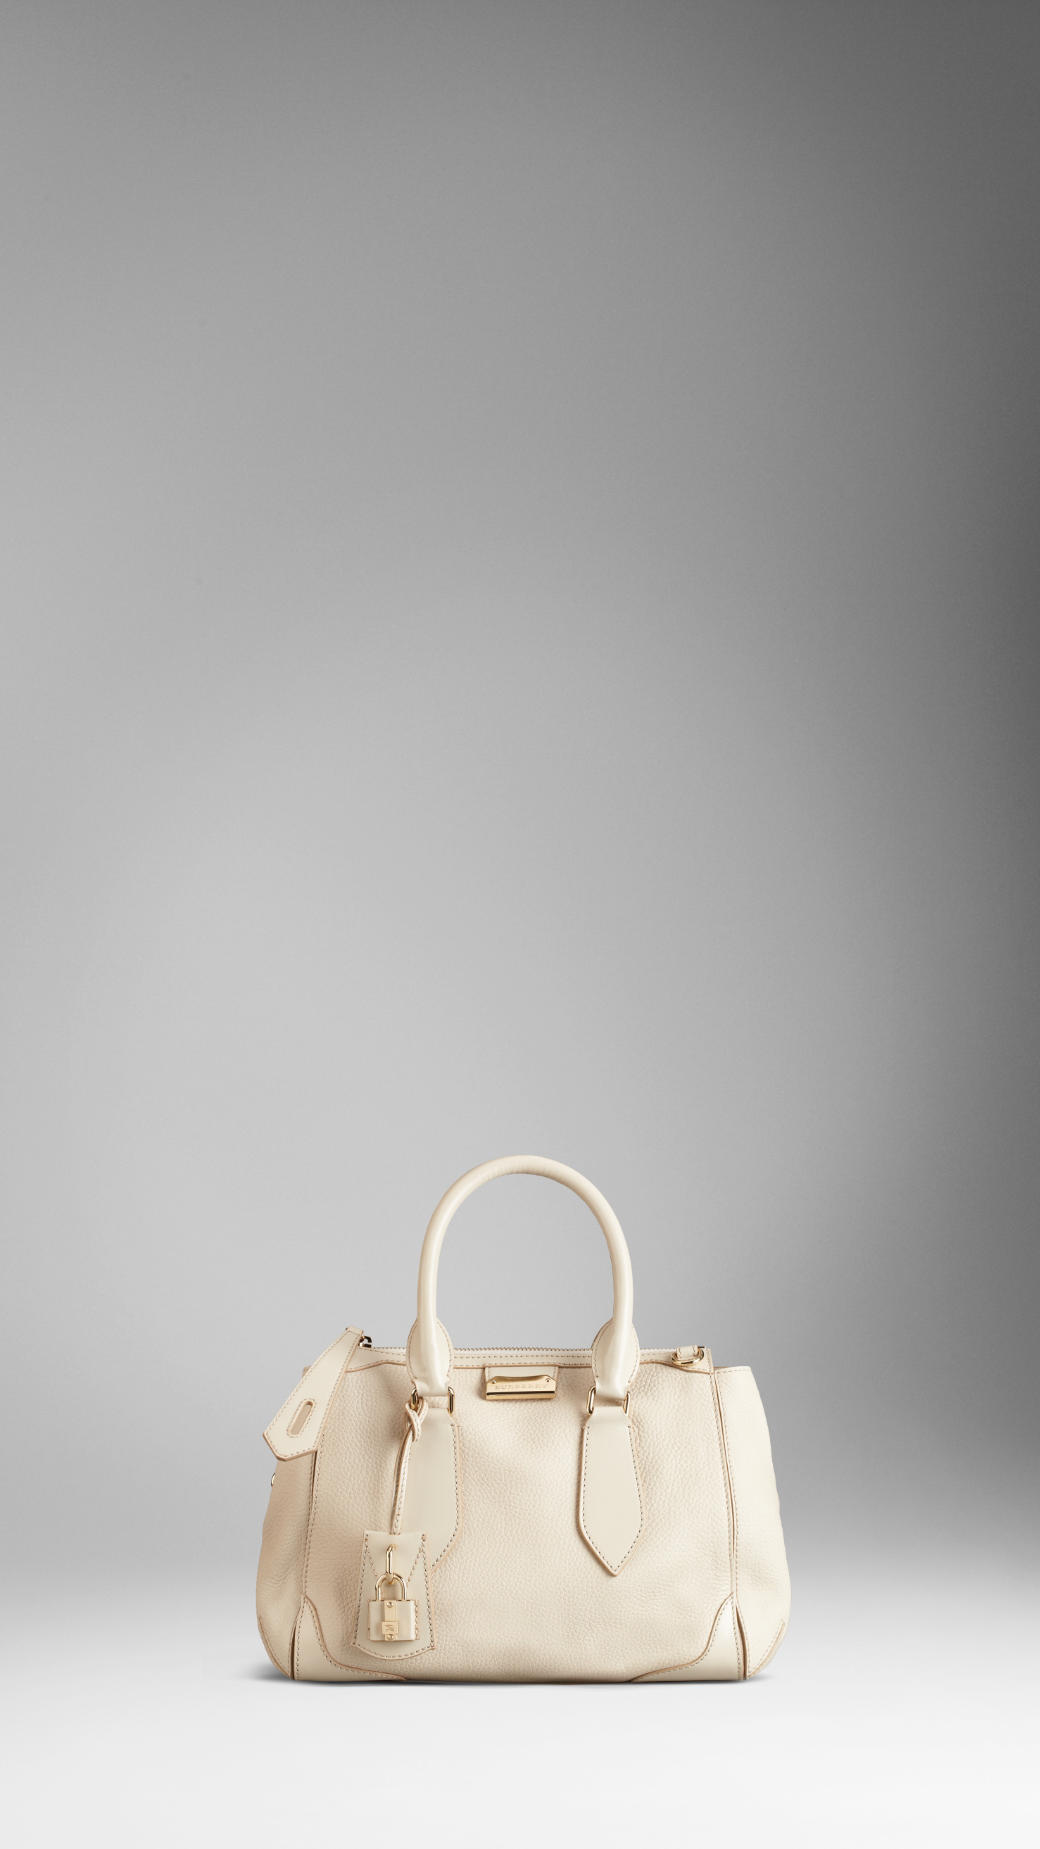 4497154cef170 Lyst - Burberry Small London Leather Tote Bag in Natural